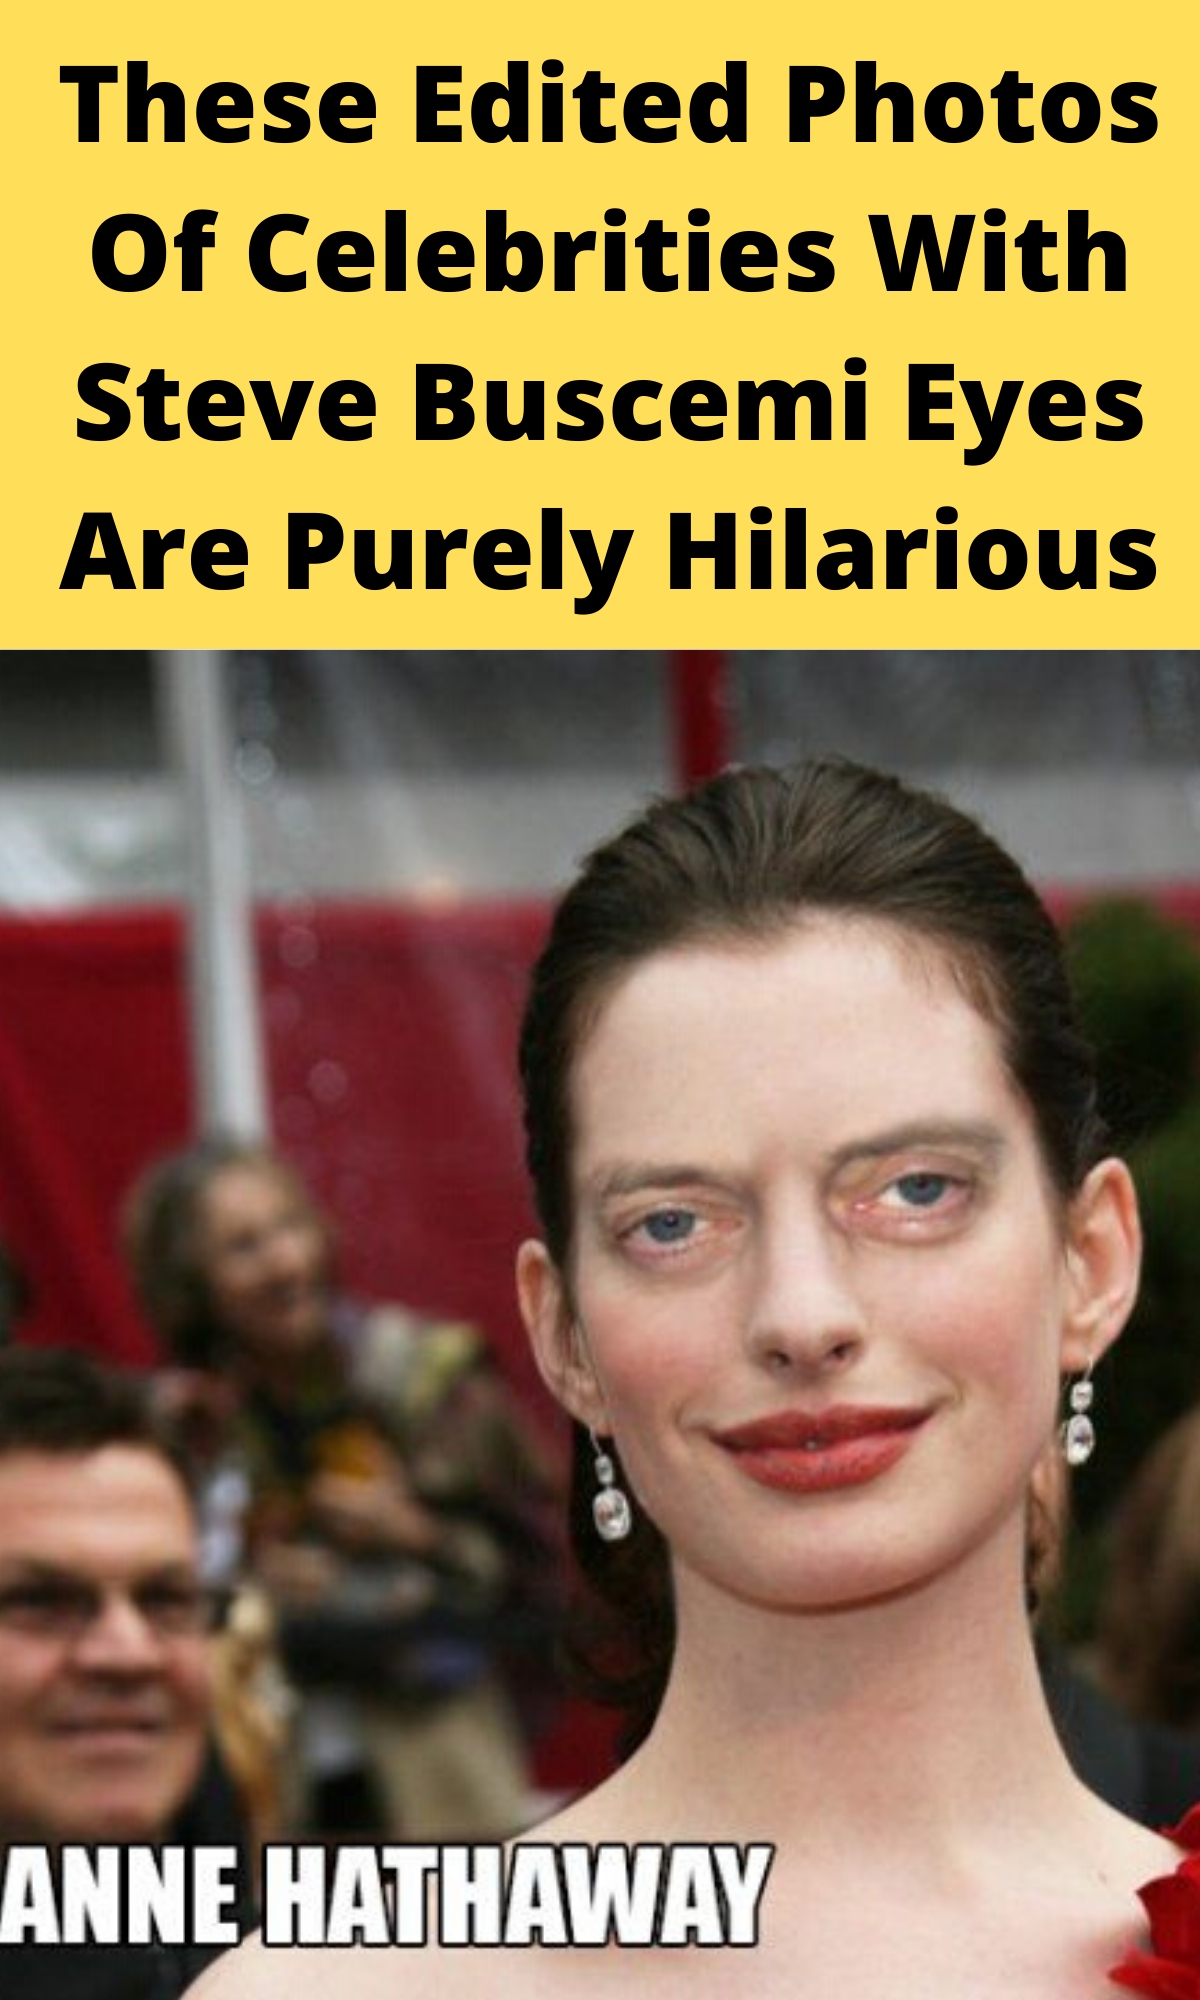 These Edited Photos Of Celebrities With Steve Buscemi Eyes Are Purely Hilarious Buscemi Eyes Hilarious Funny Memes